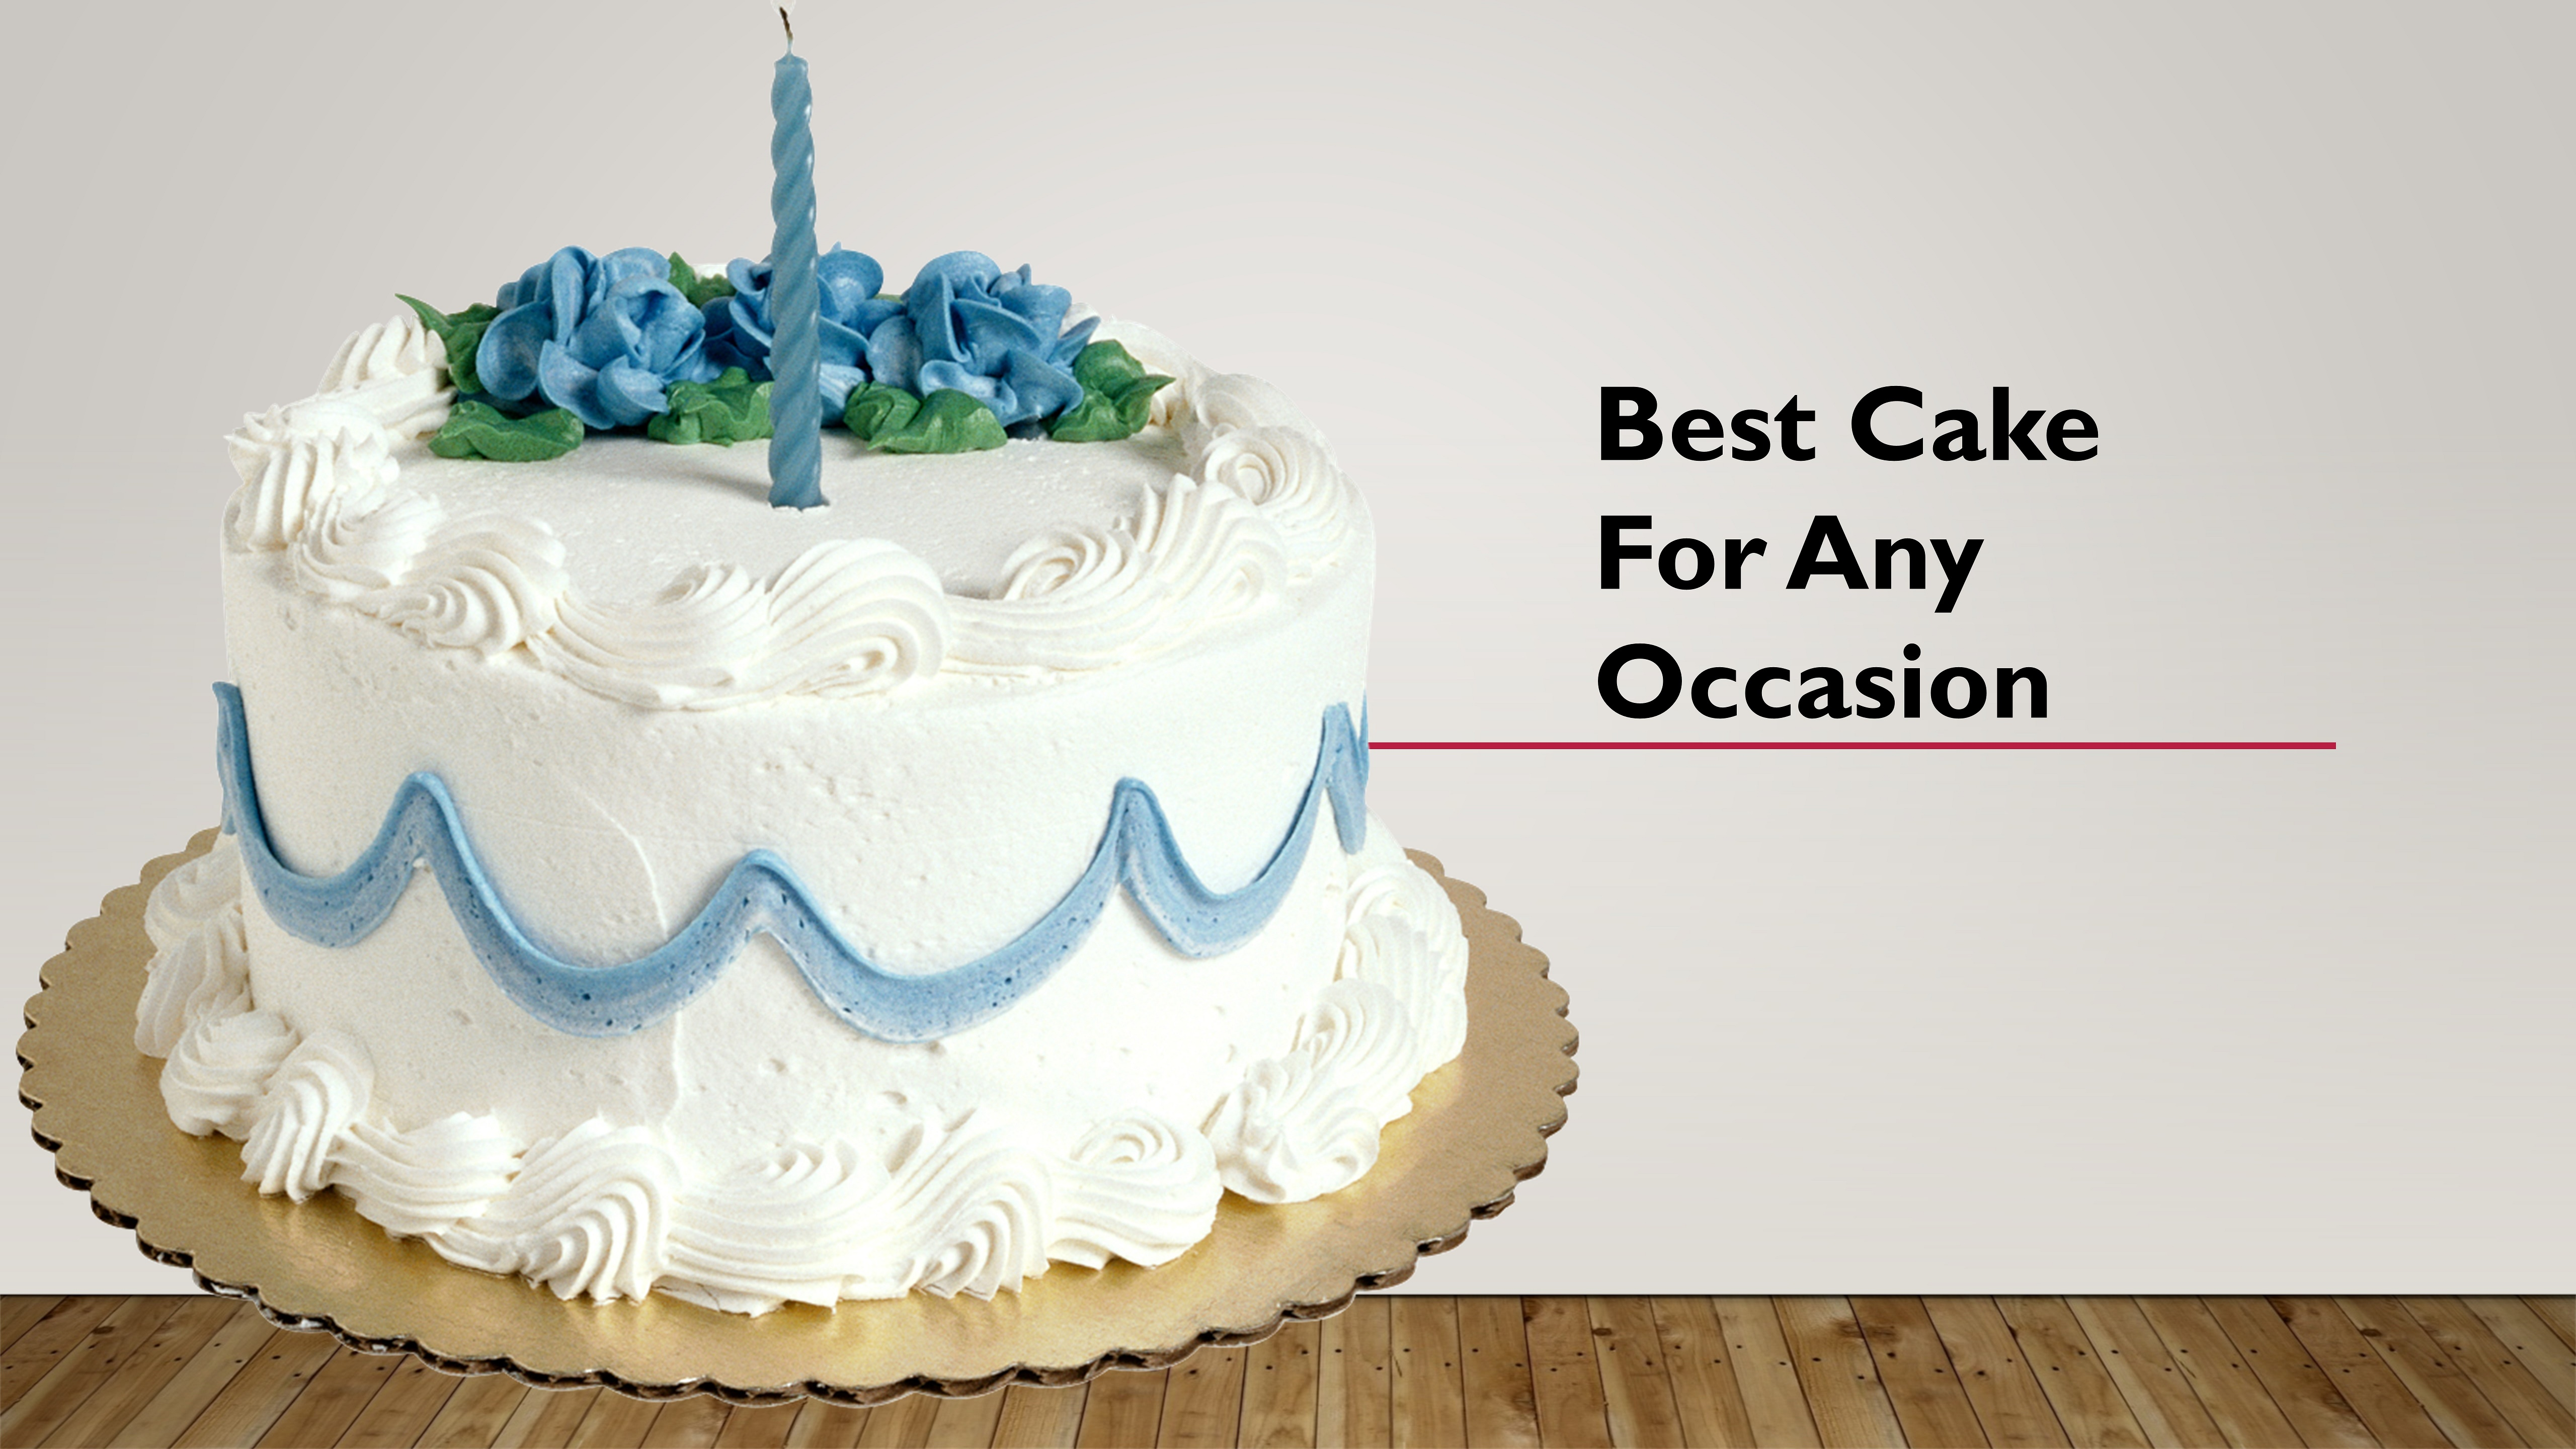 Cake for Any Occasion